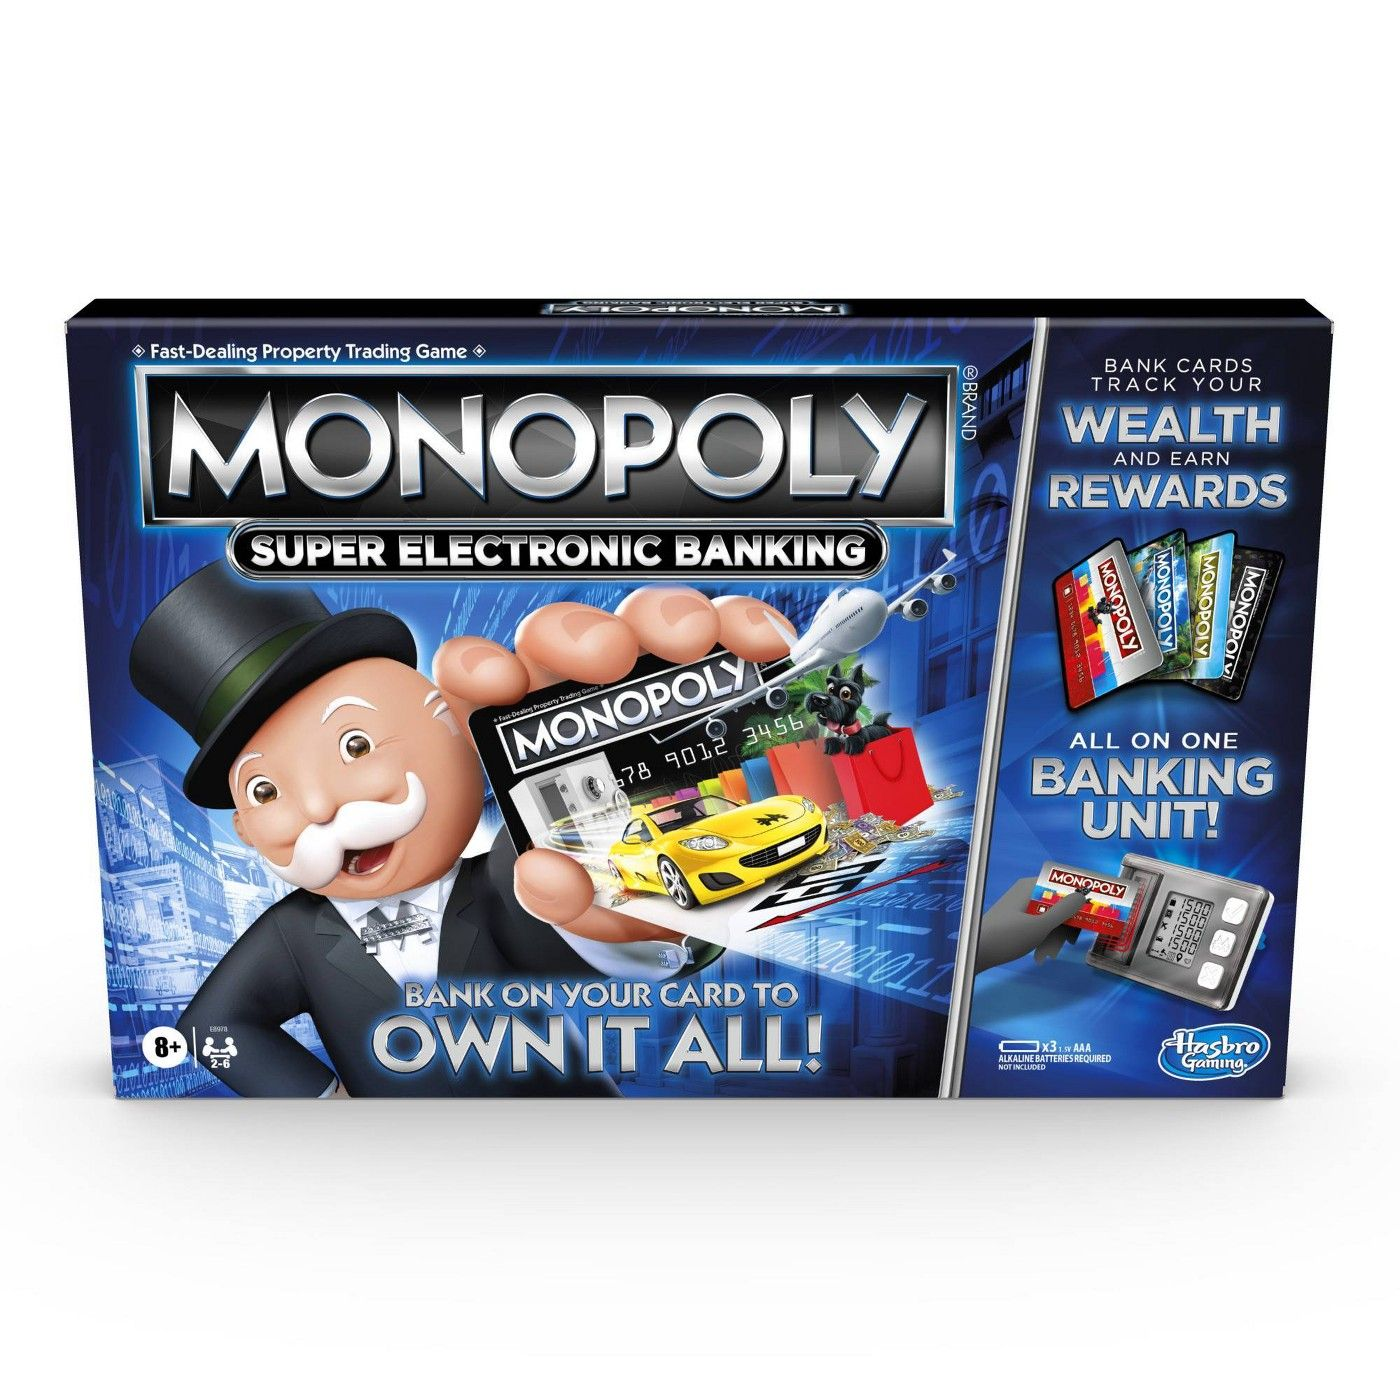 Monopoly Super Electronic Banking Game In 2021 Electronic Banking Board Games For Kids Games For Kids